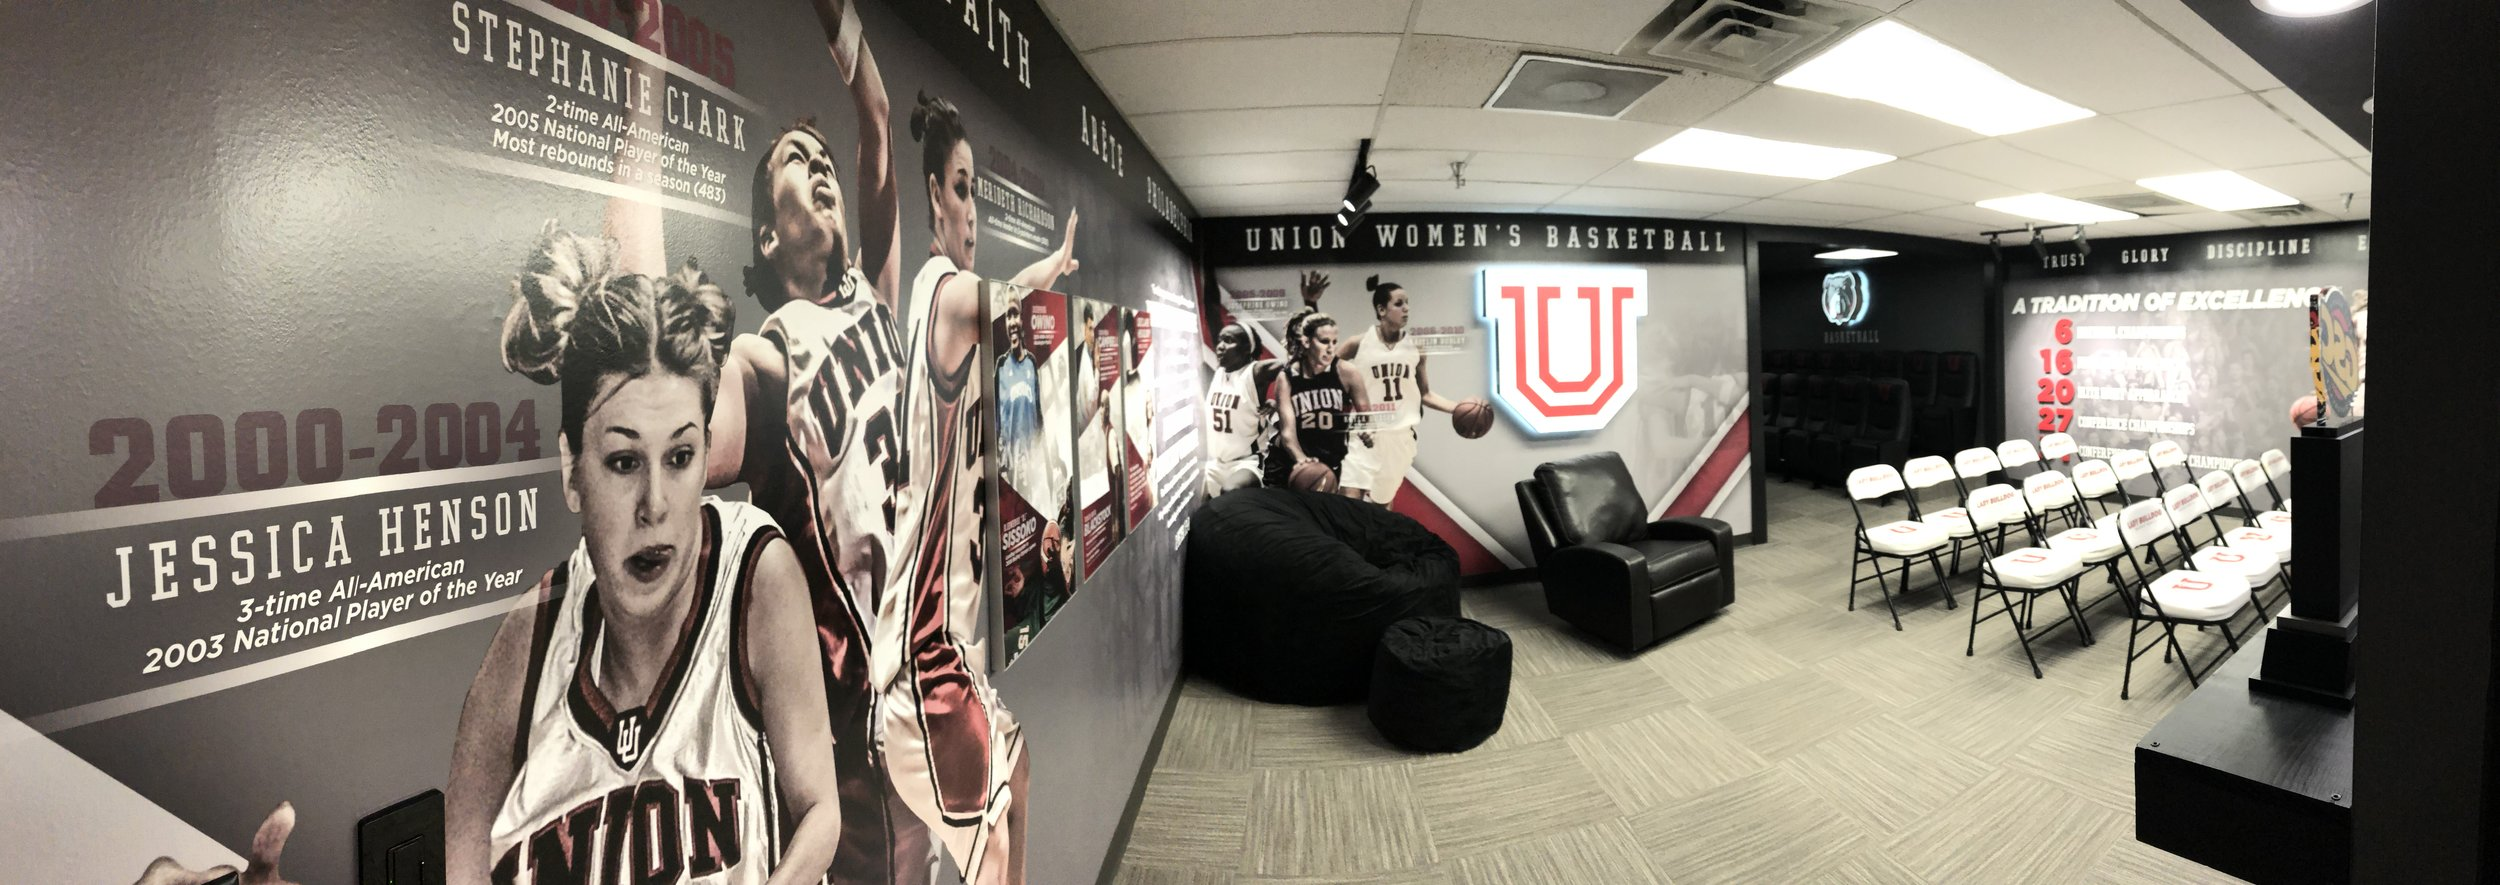 After-Union-University_Womens-Basketball-Locker-Room_Interior-Branding_LSIGraphics_Memphis-TN-15 ..